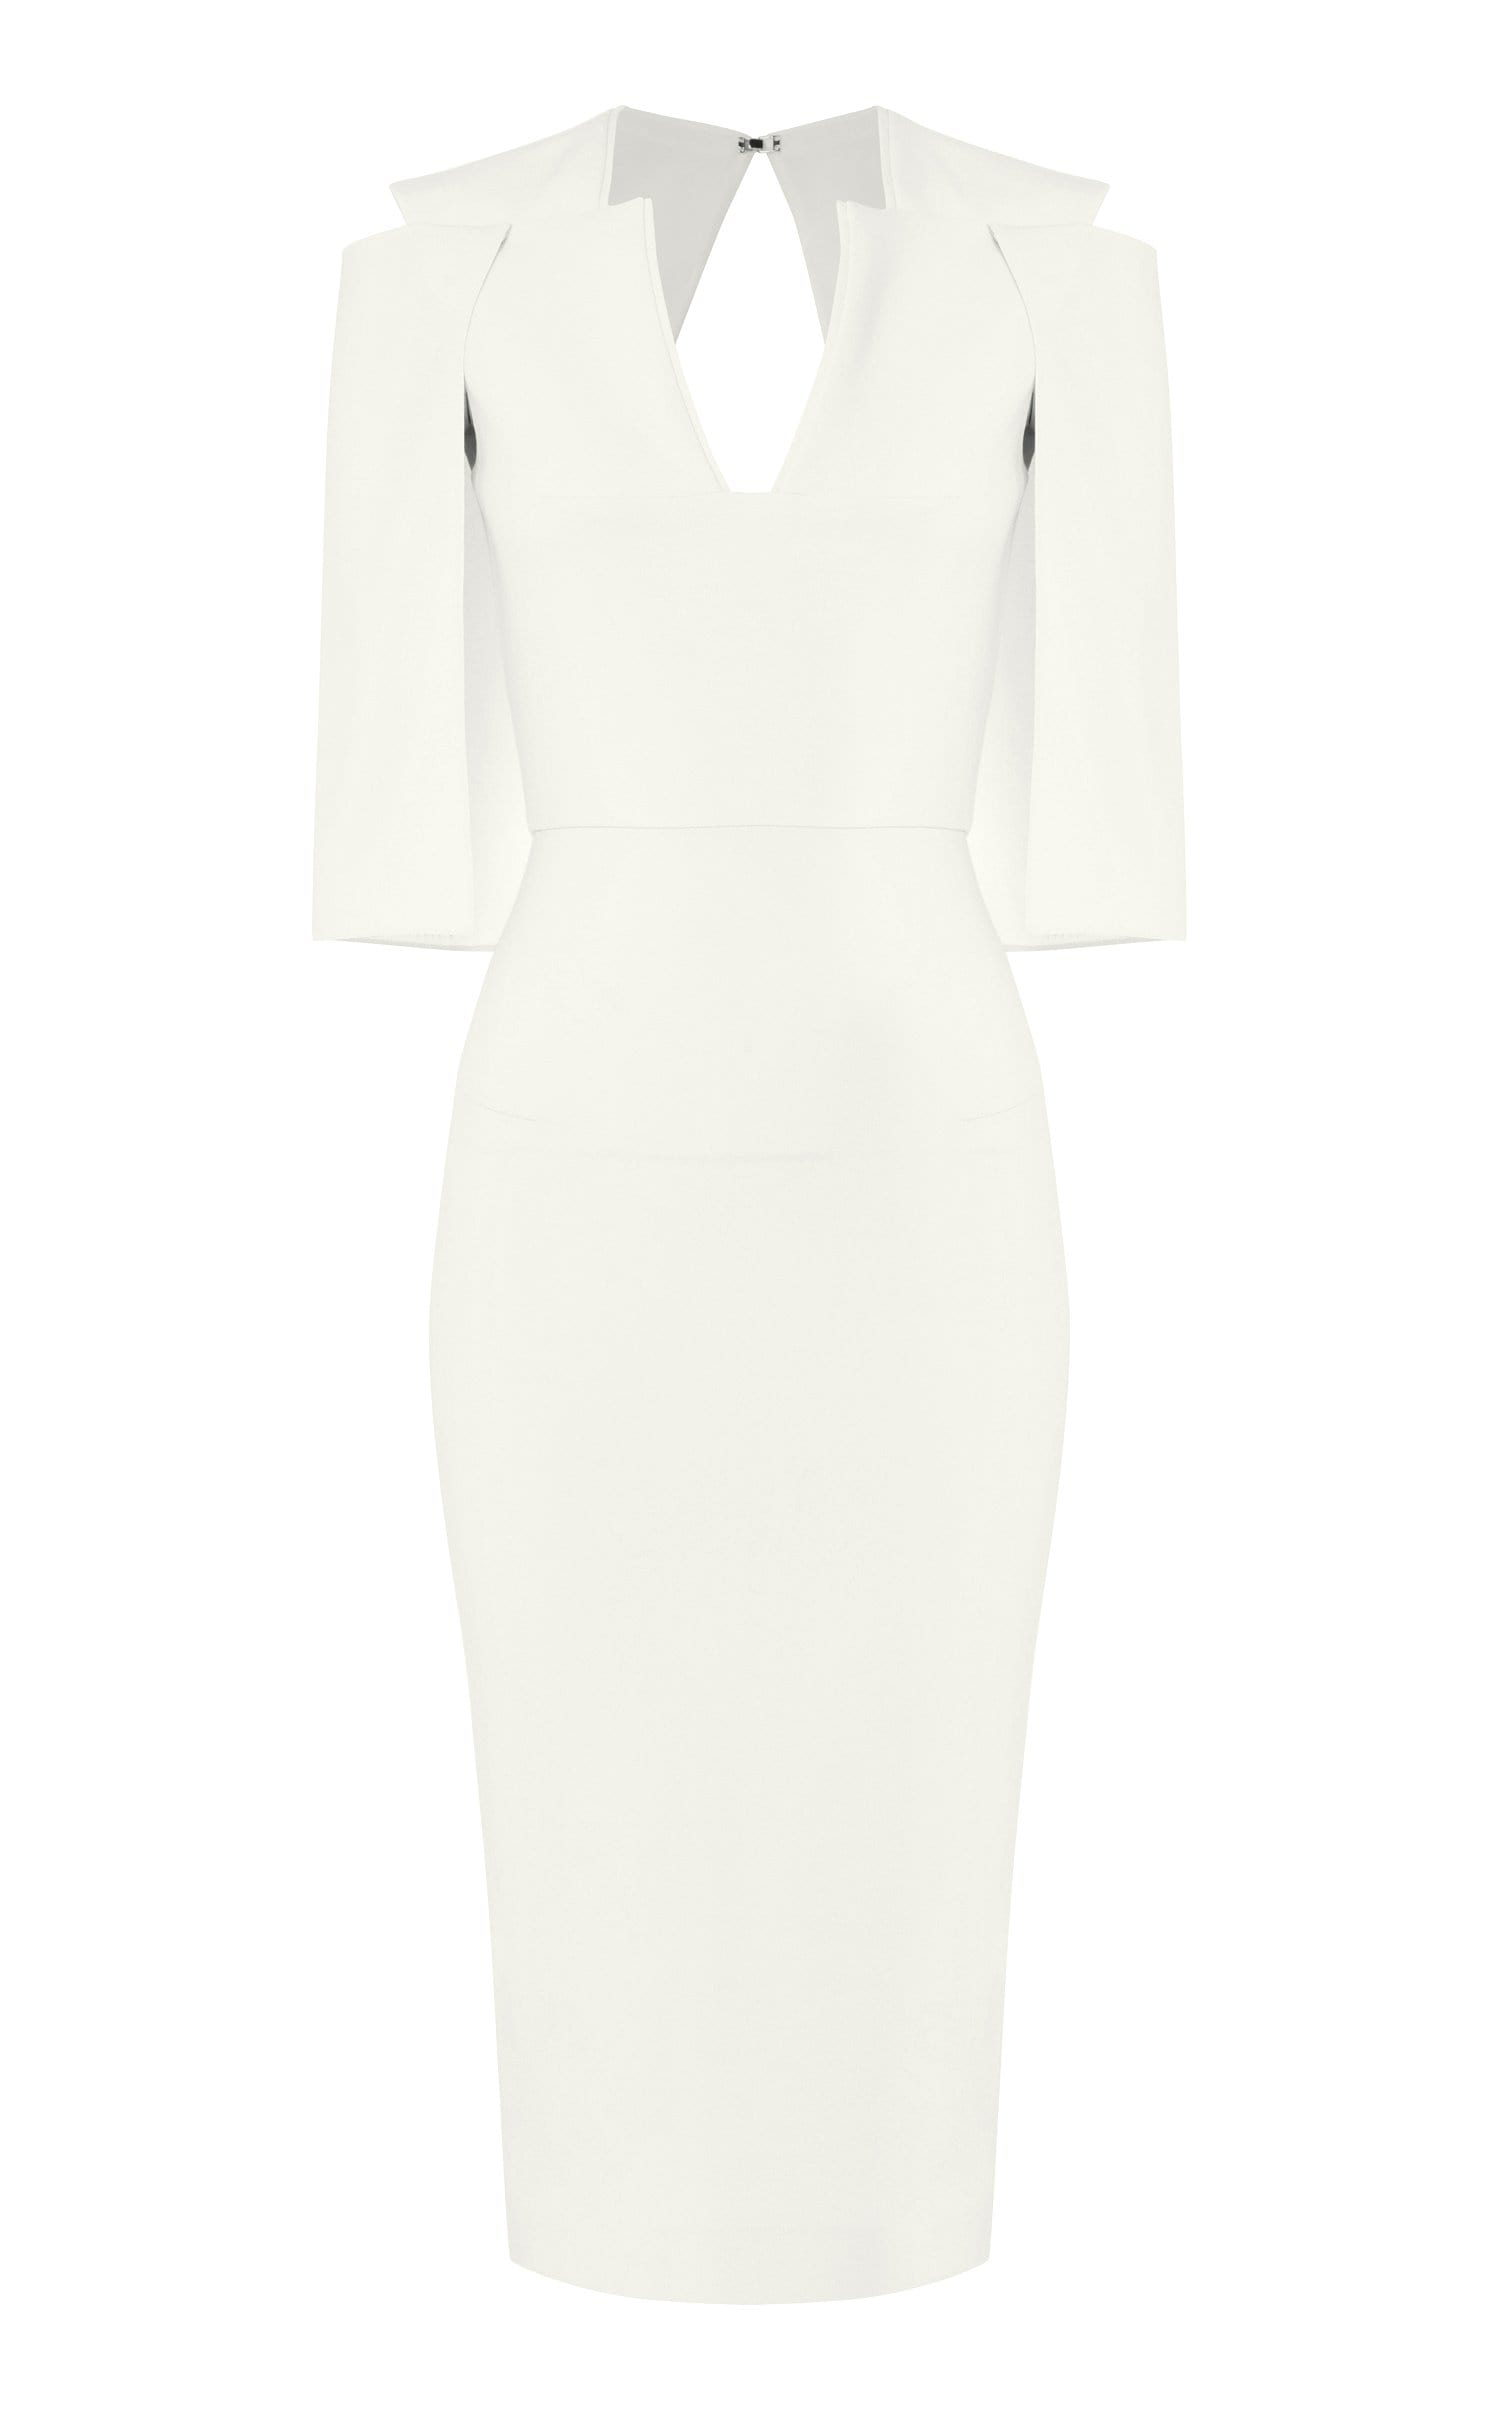 Queensbury Dress In White from Roland Mouret